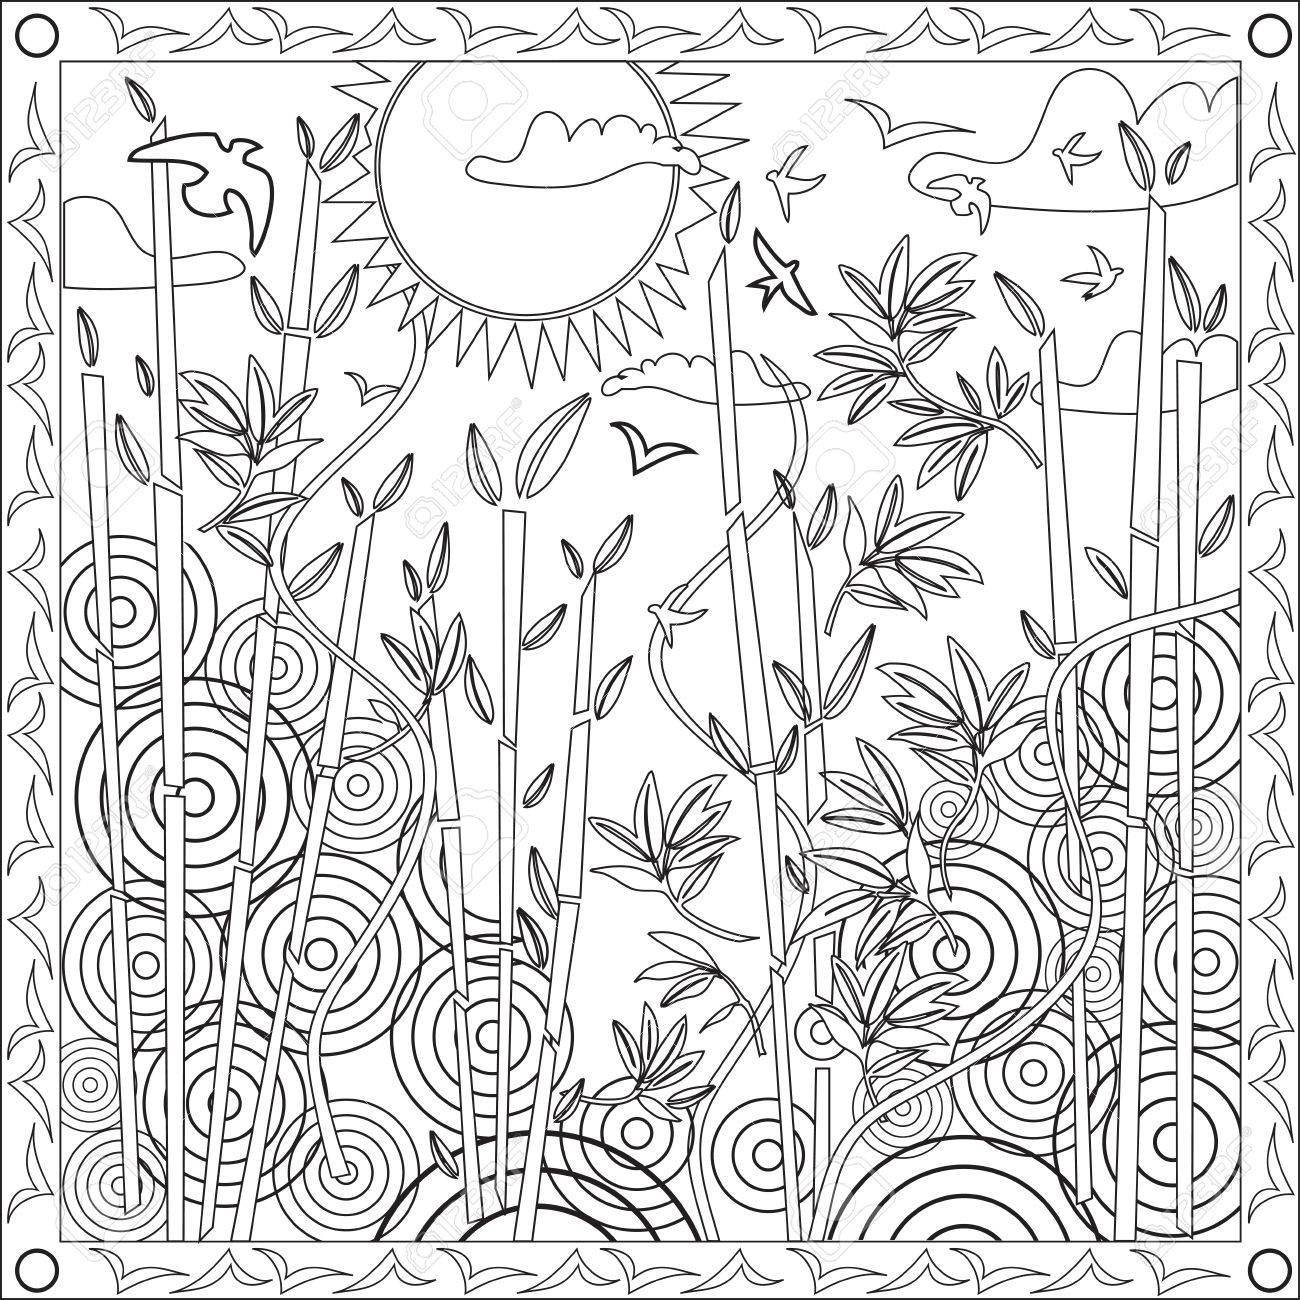 1300x1300 Page Coloring Book For Adults Square Format Japanese Bamboo Design